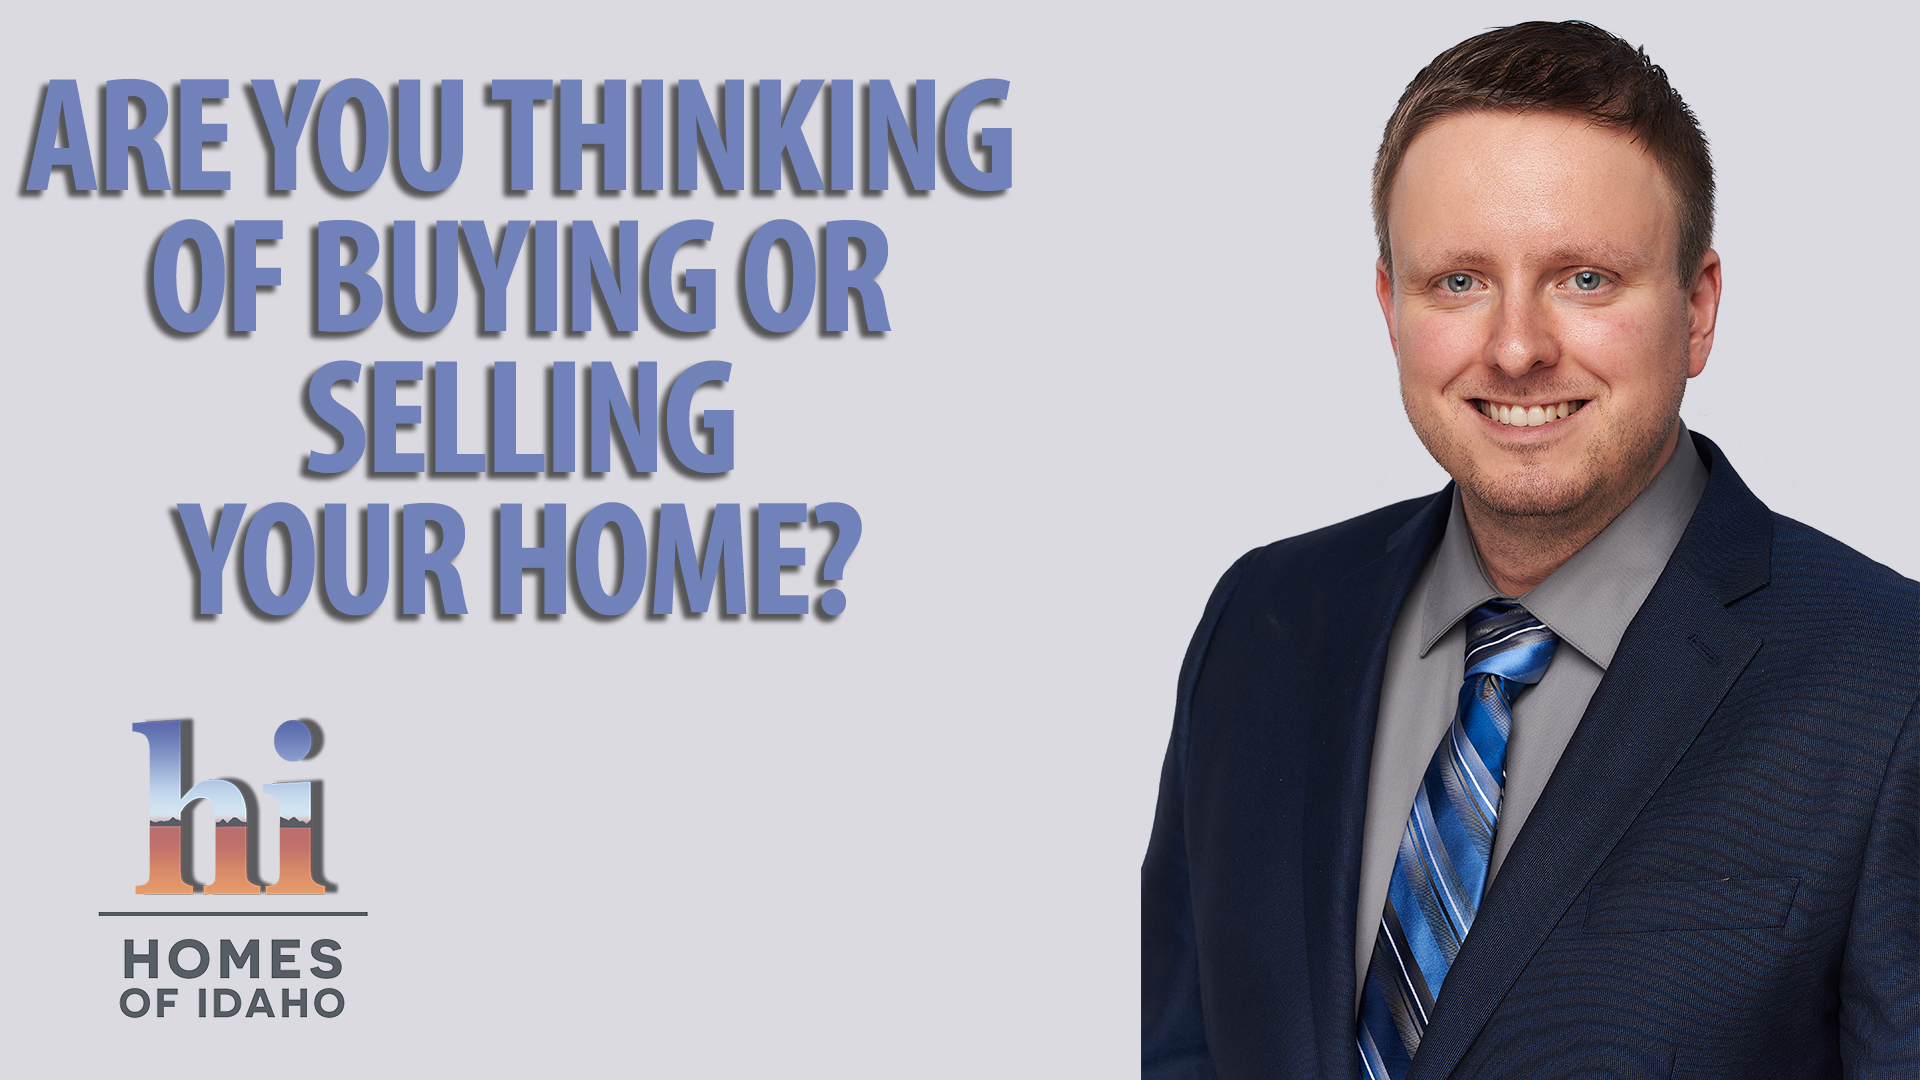 Are you thinking of buying or selling a home?